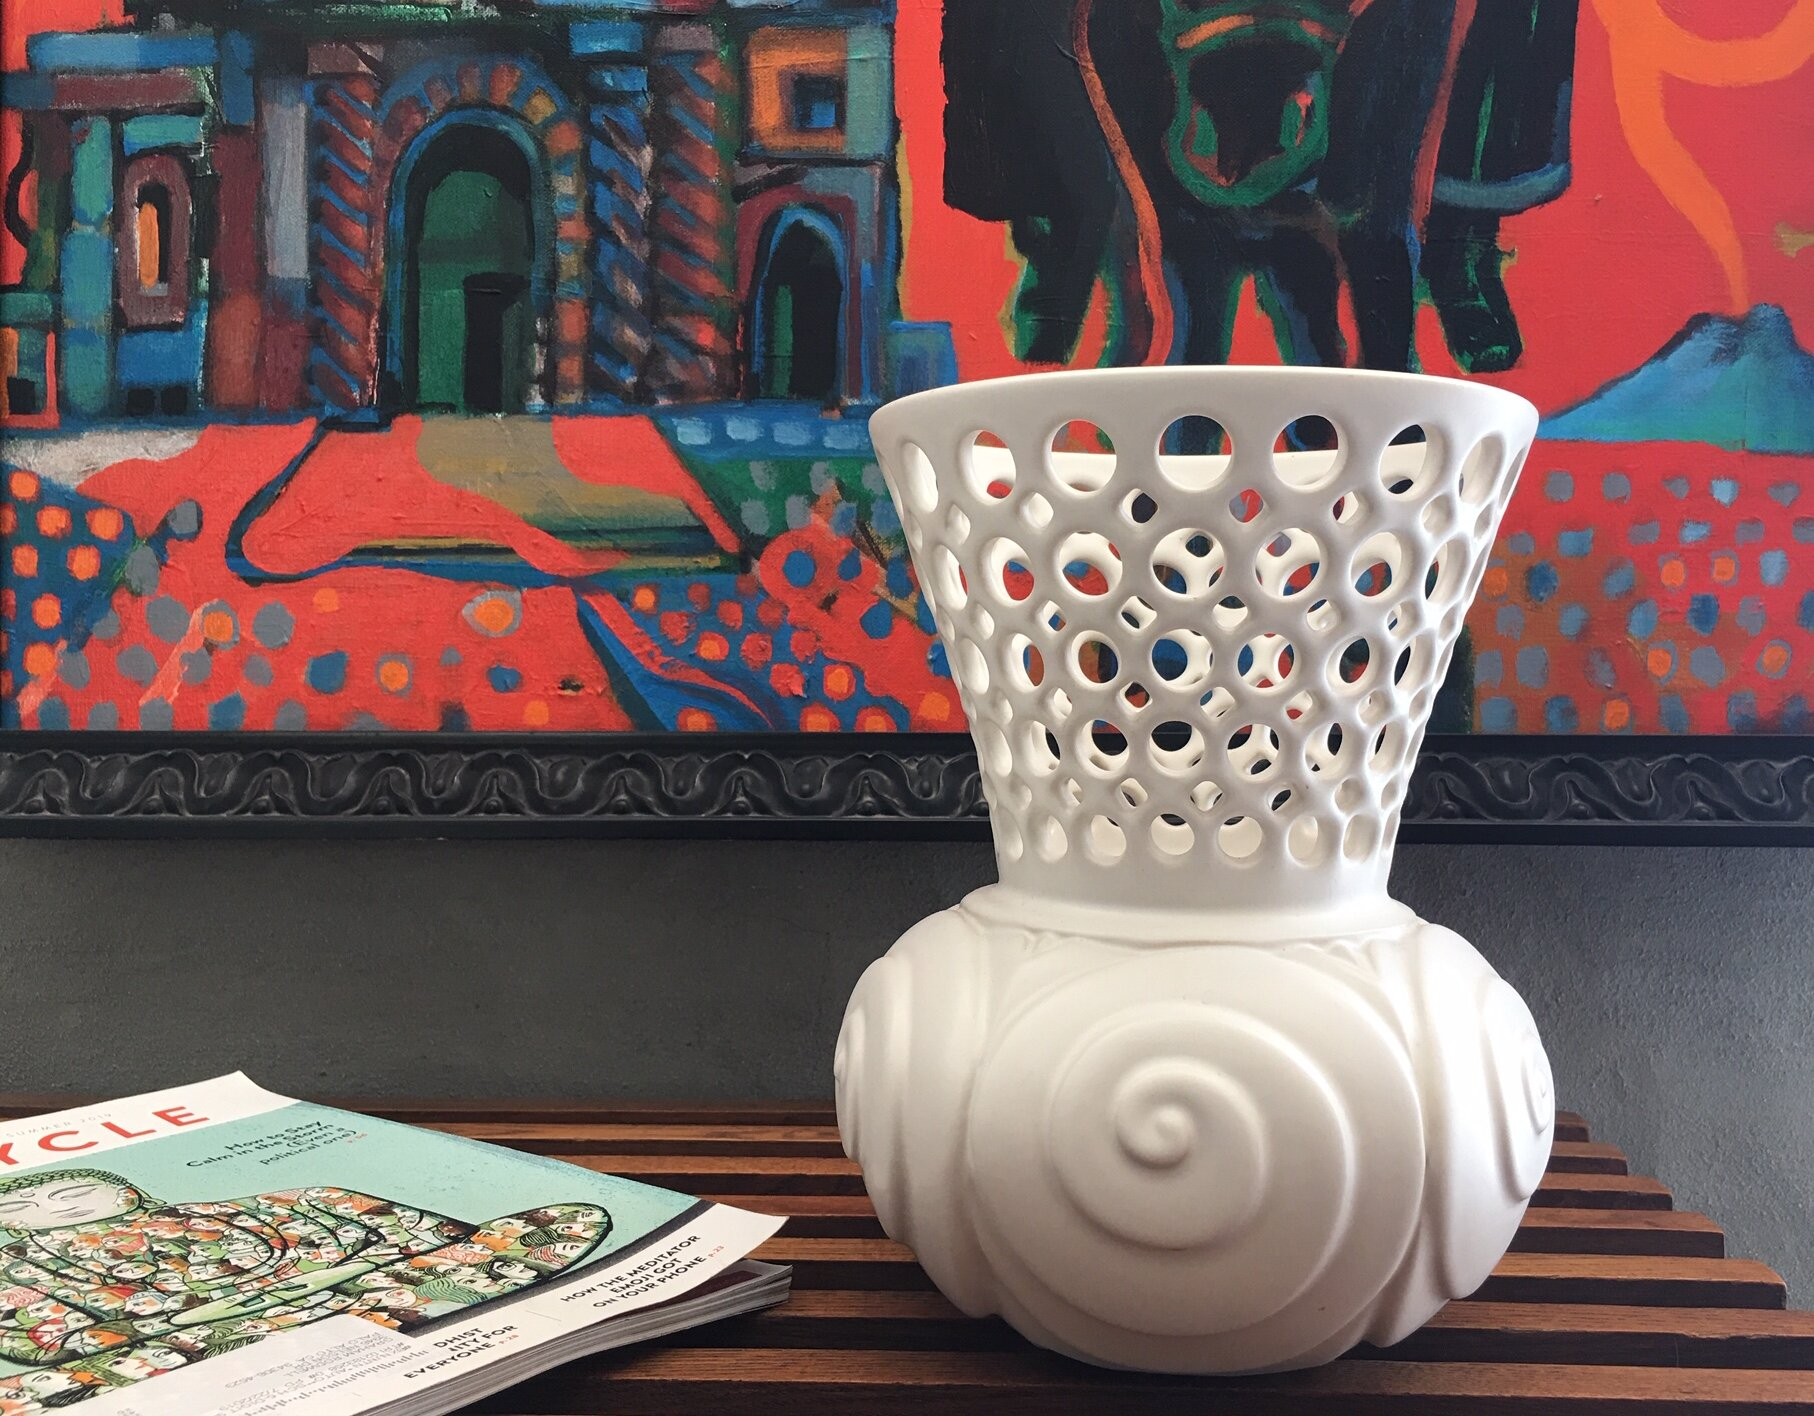 Spiral shell pierced and carved vessel in family room of Eichler residence, Palo Alto, CA